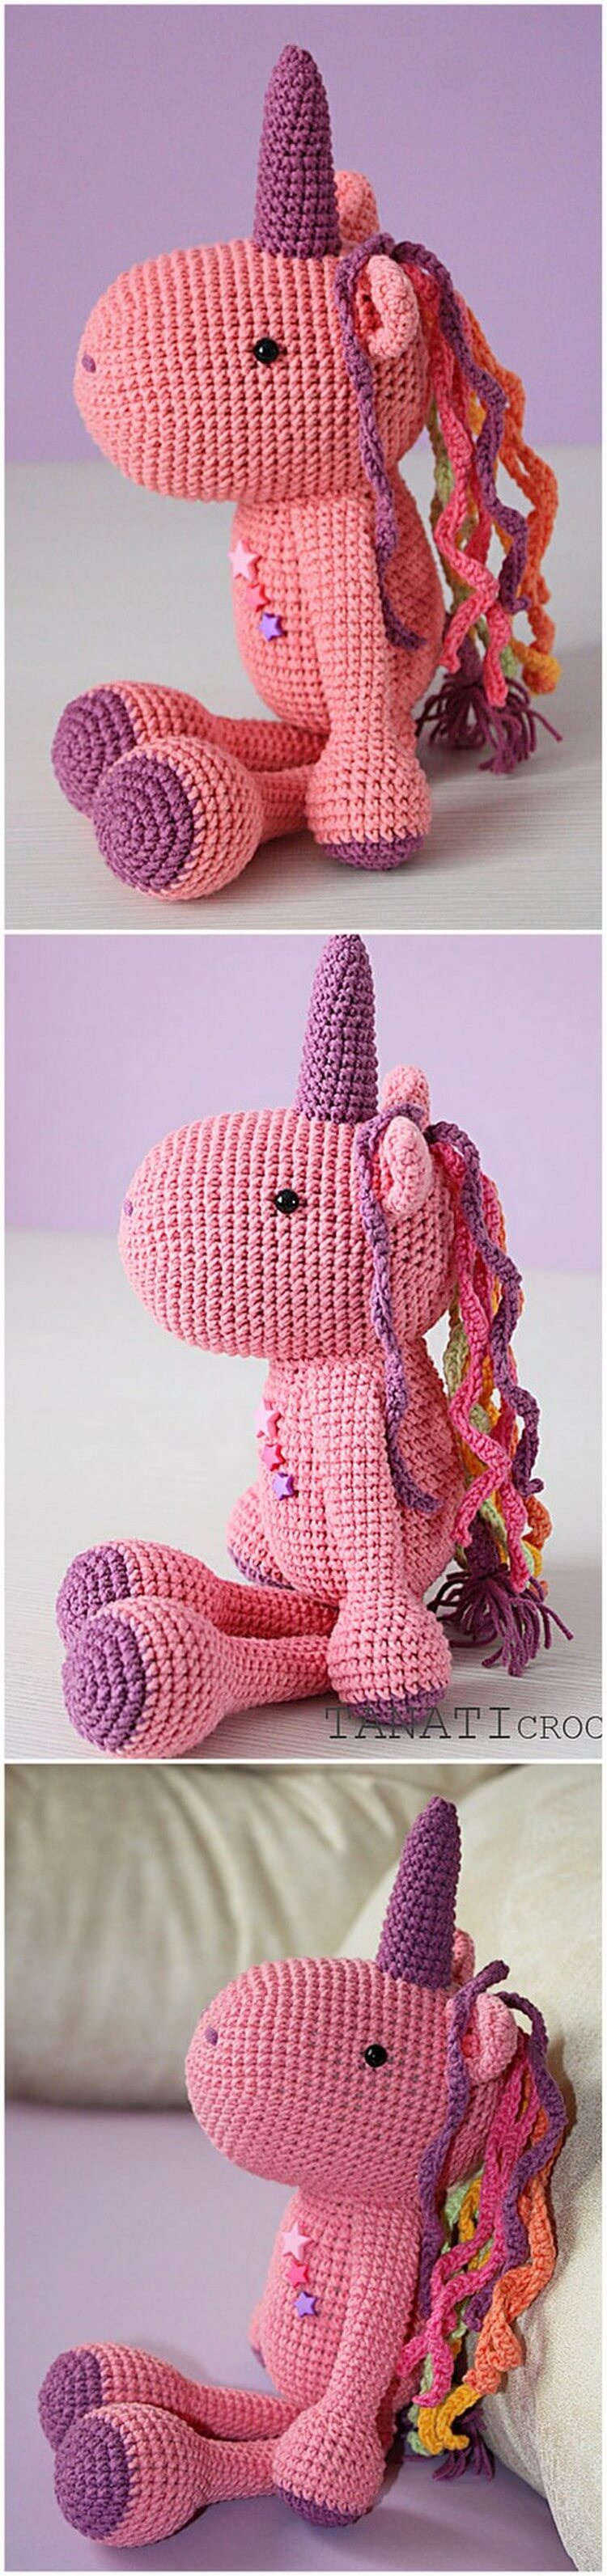 Crochet Unicorn Pattern (11)